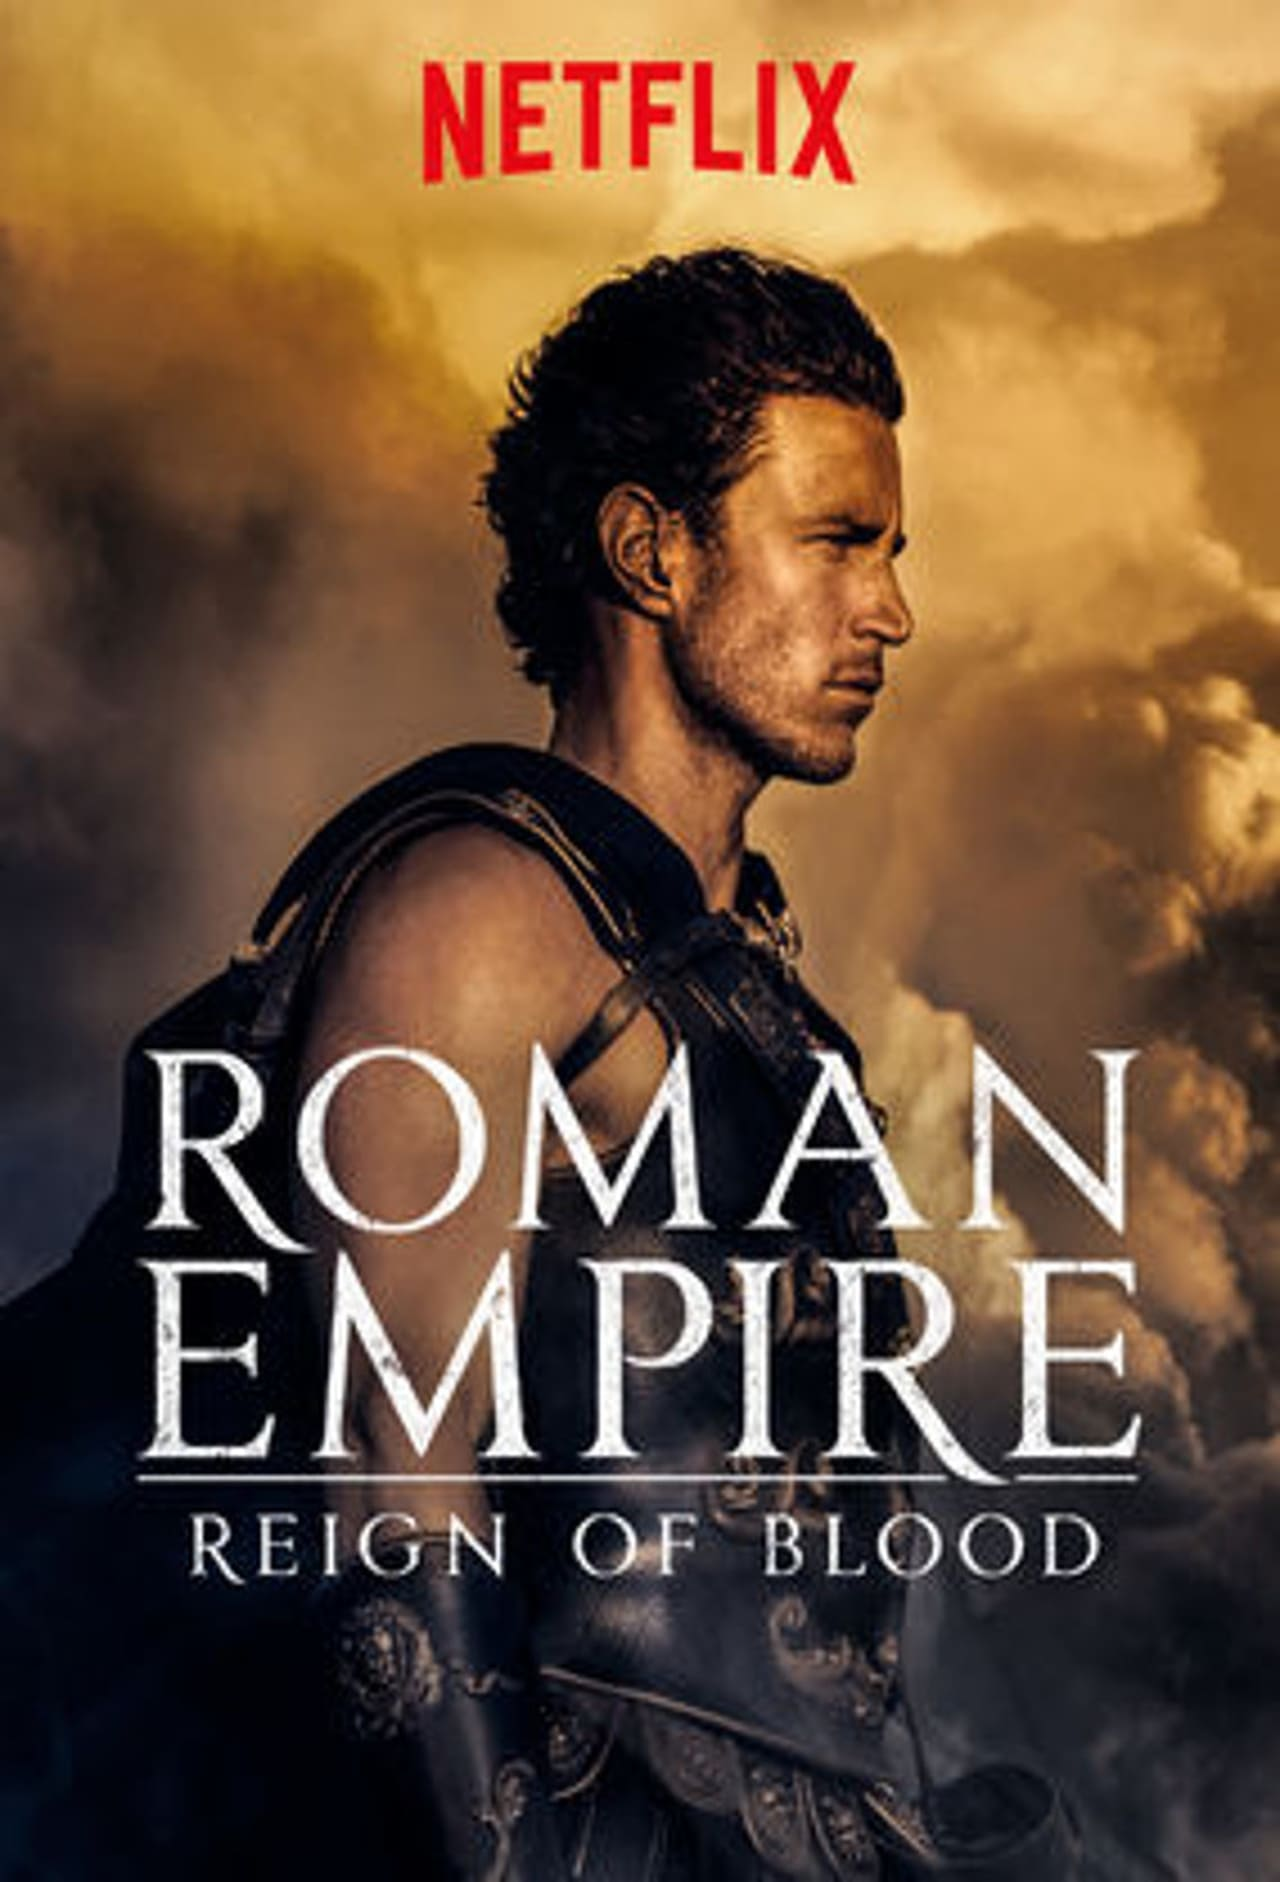 Roman Empire Season 1